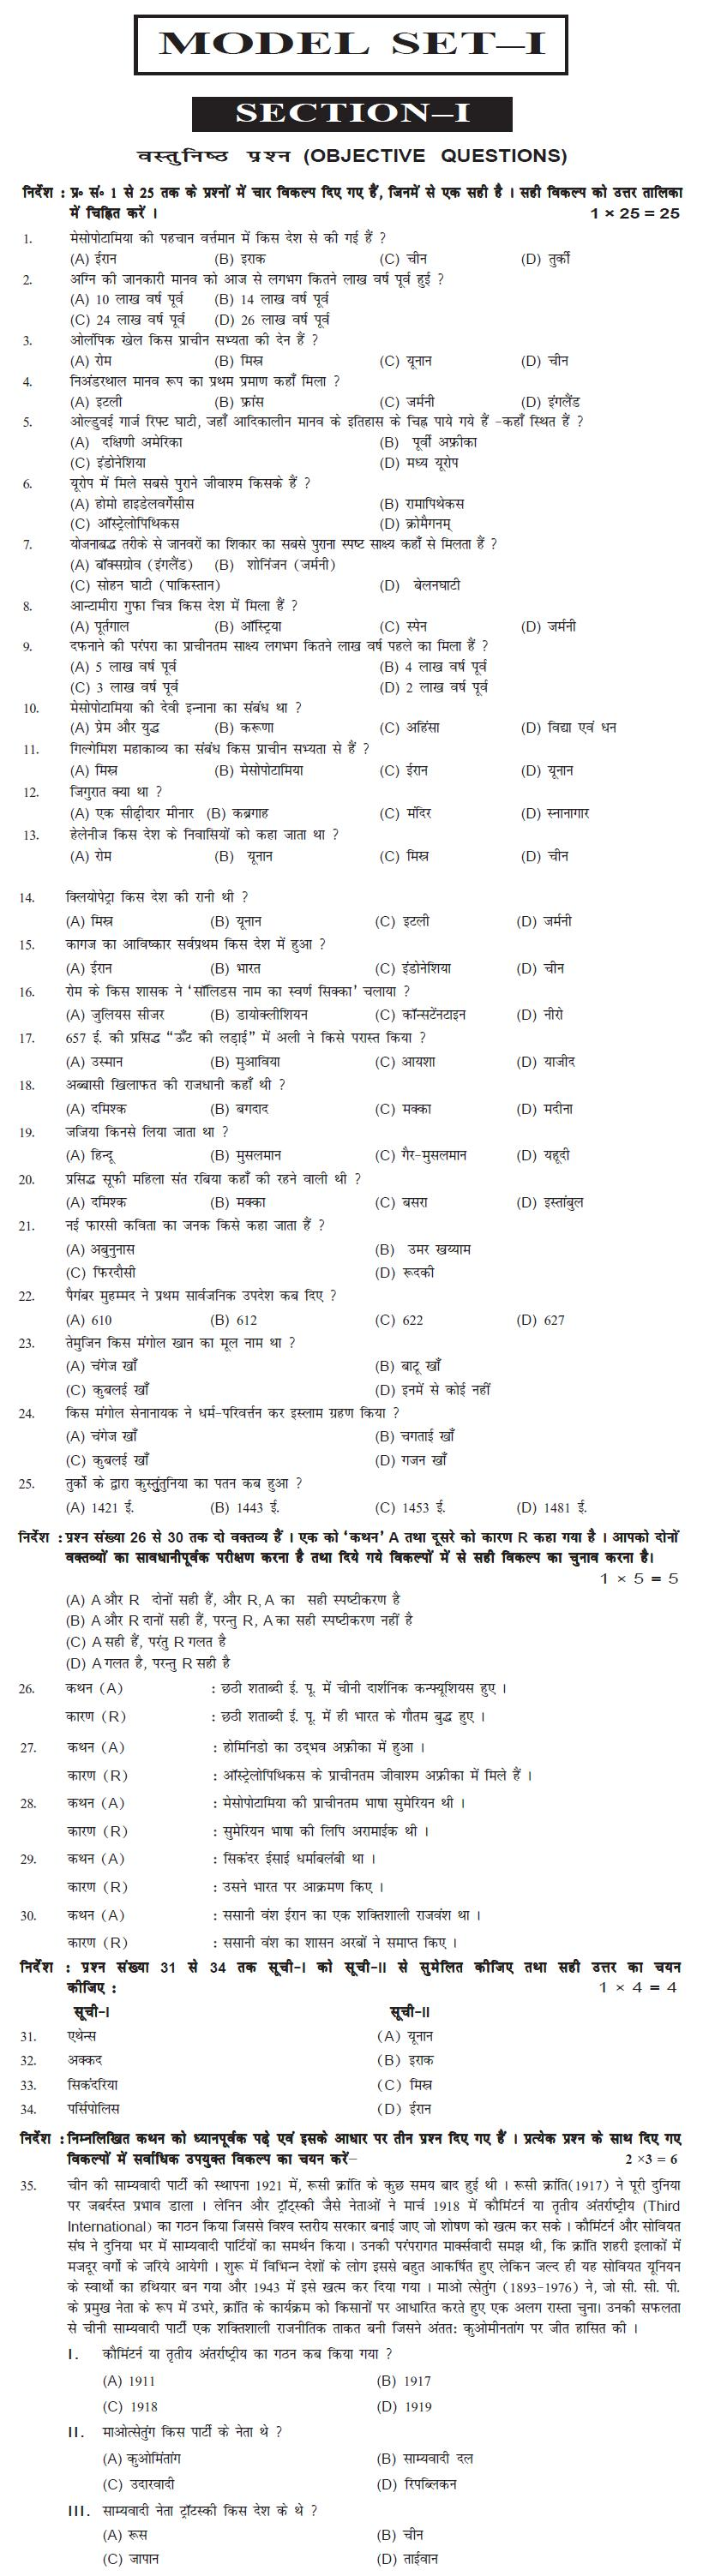 Bihar Board Class XI Arts Model Question Papers - Histroy